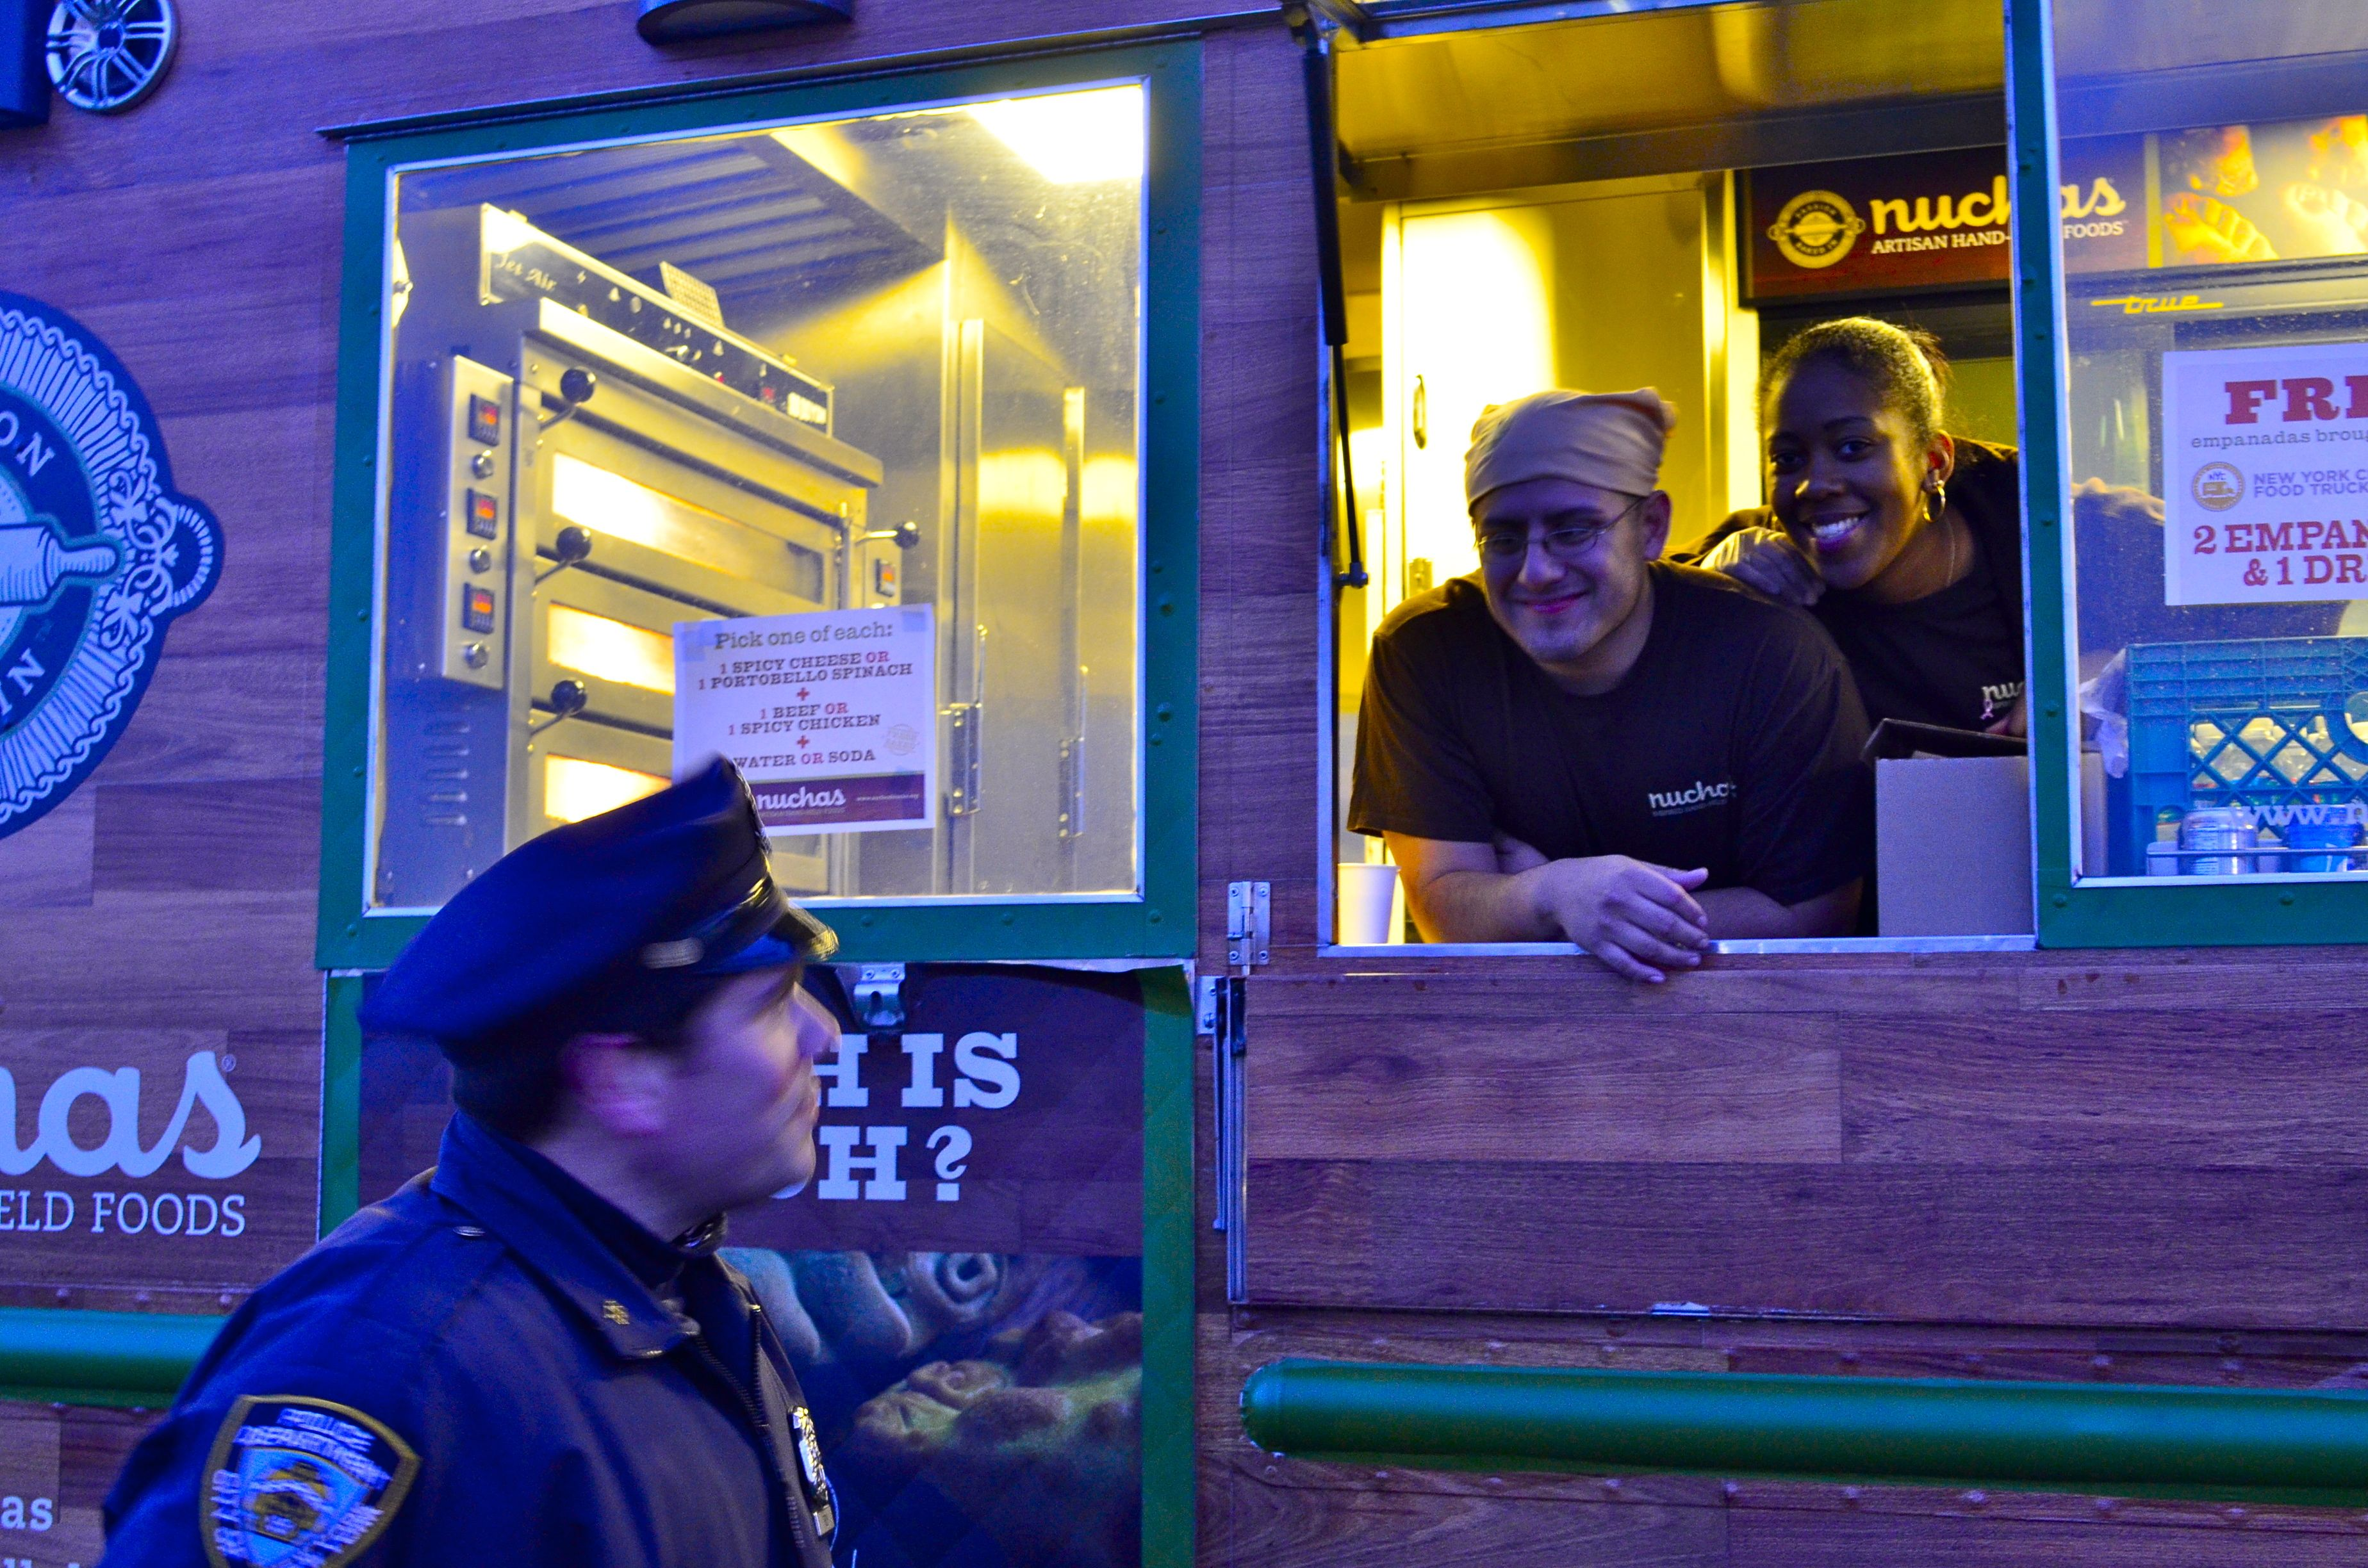 The @NYPD and @NuchasNYC offer post-Sandy relief. Thank you for your support, @NYCMayorsOffice! #SandyUnites